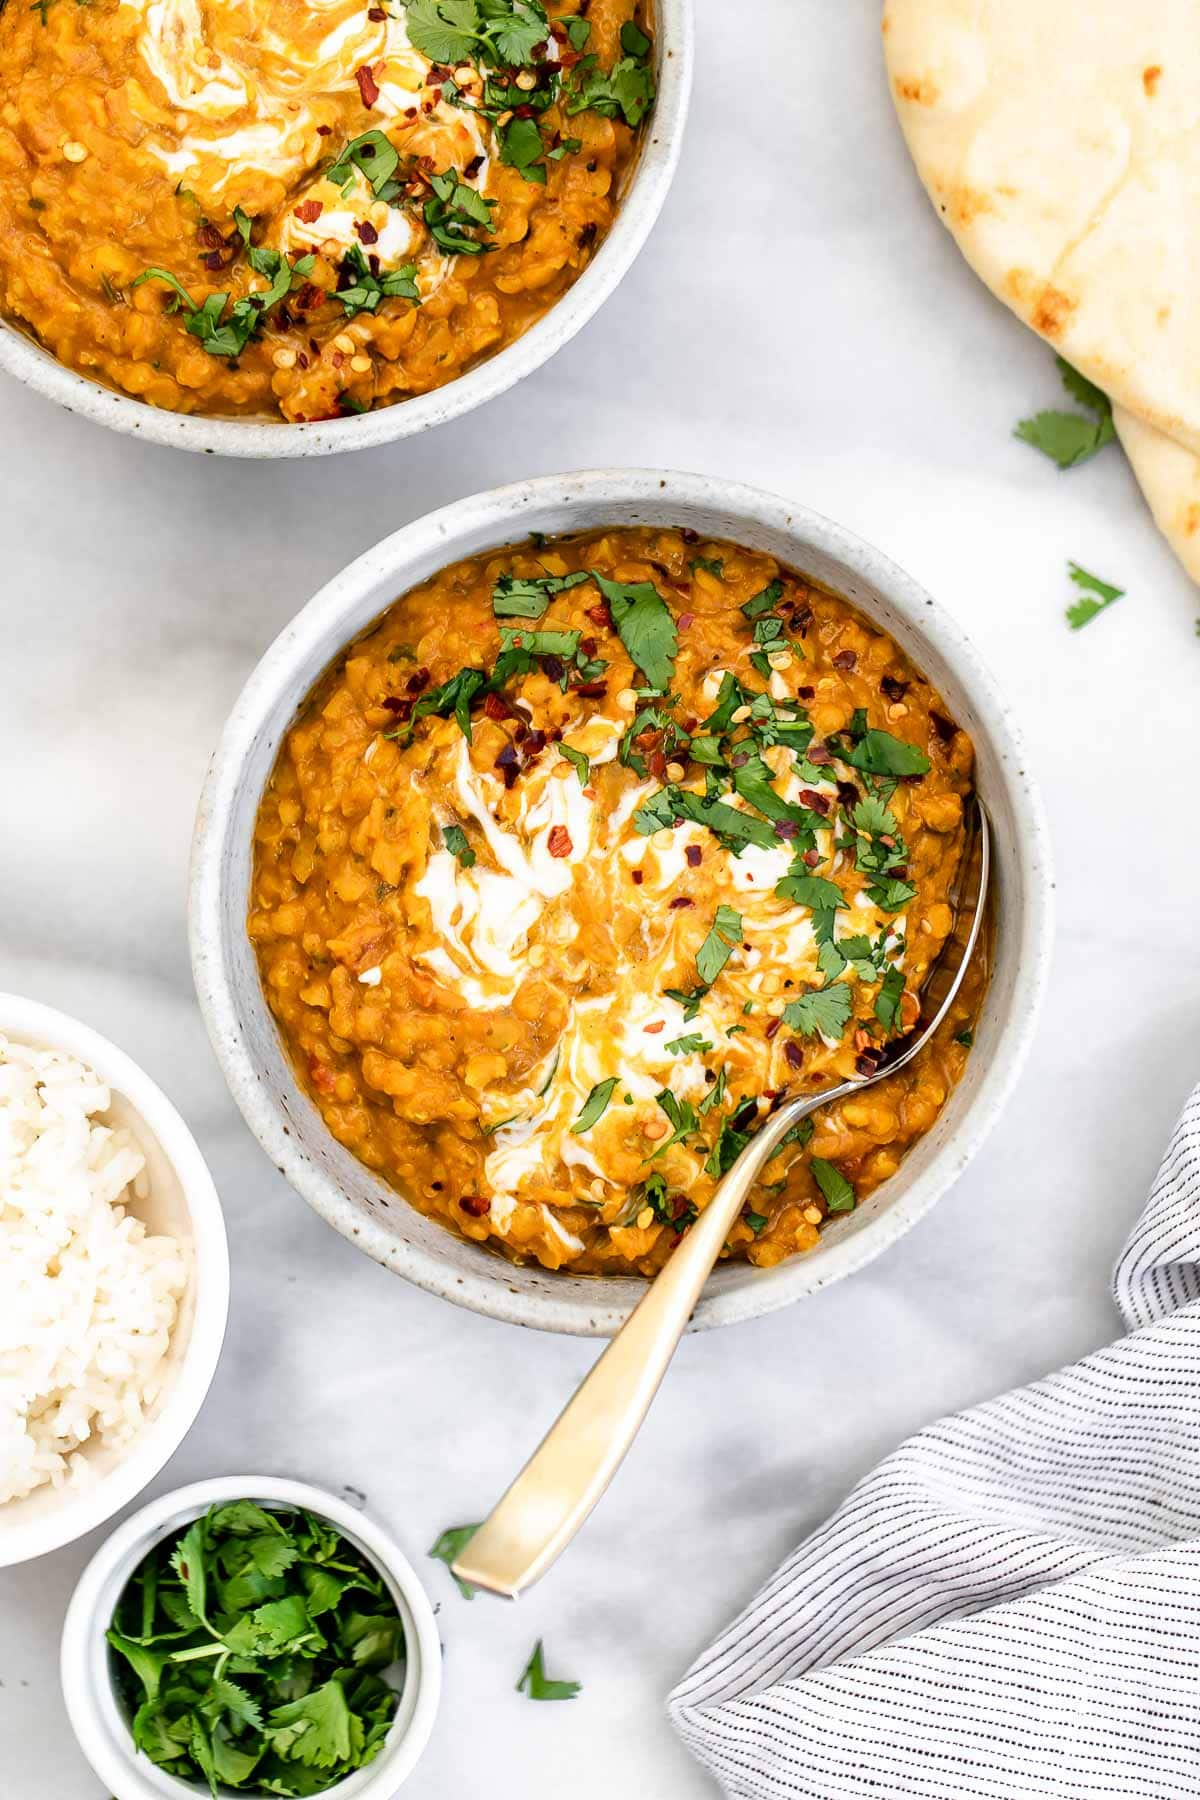 One bowl of lentil curry with yogurt and cilantro on top with a spoon on the side.